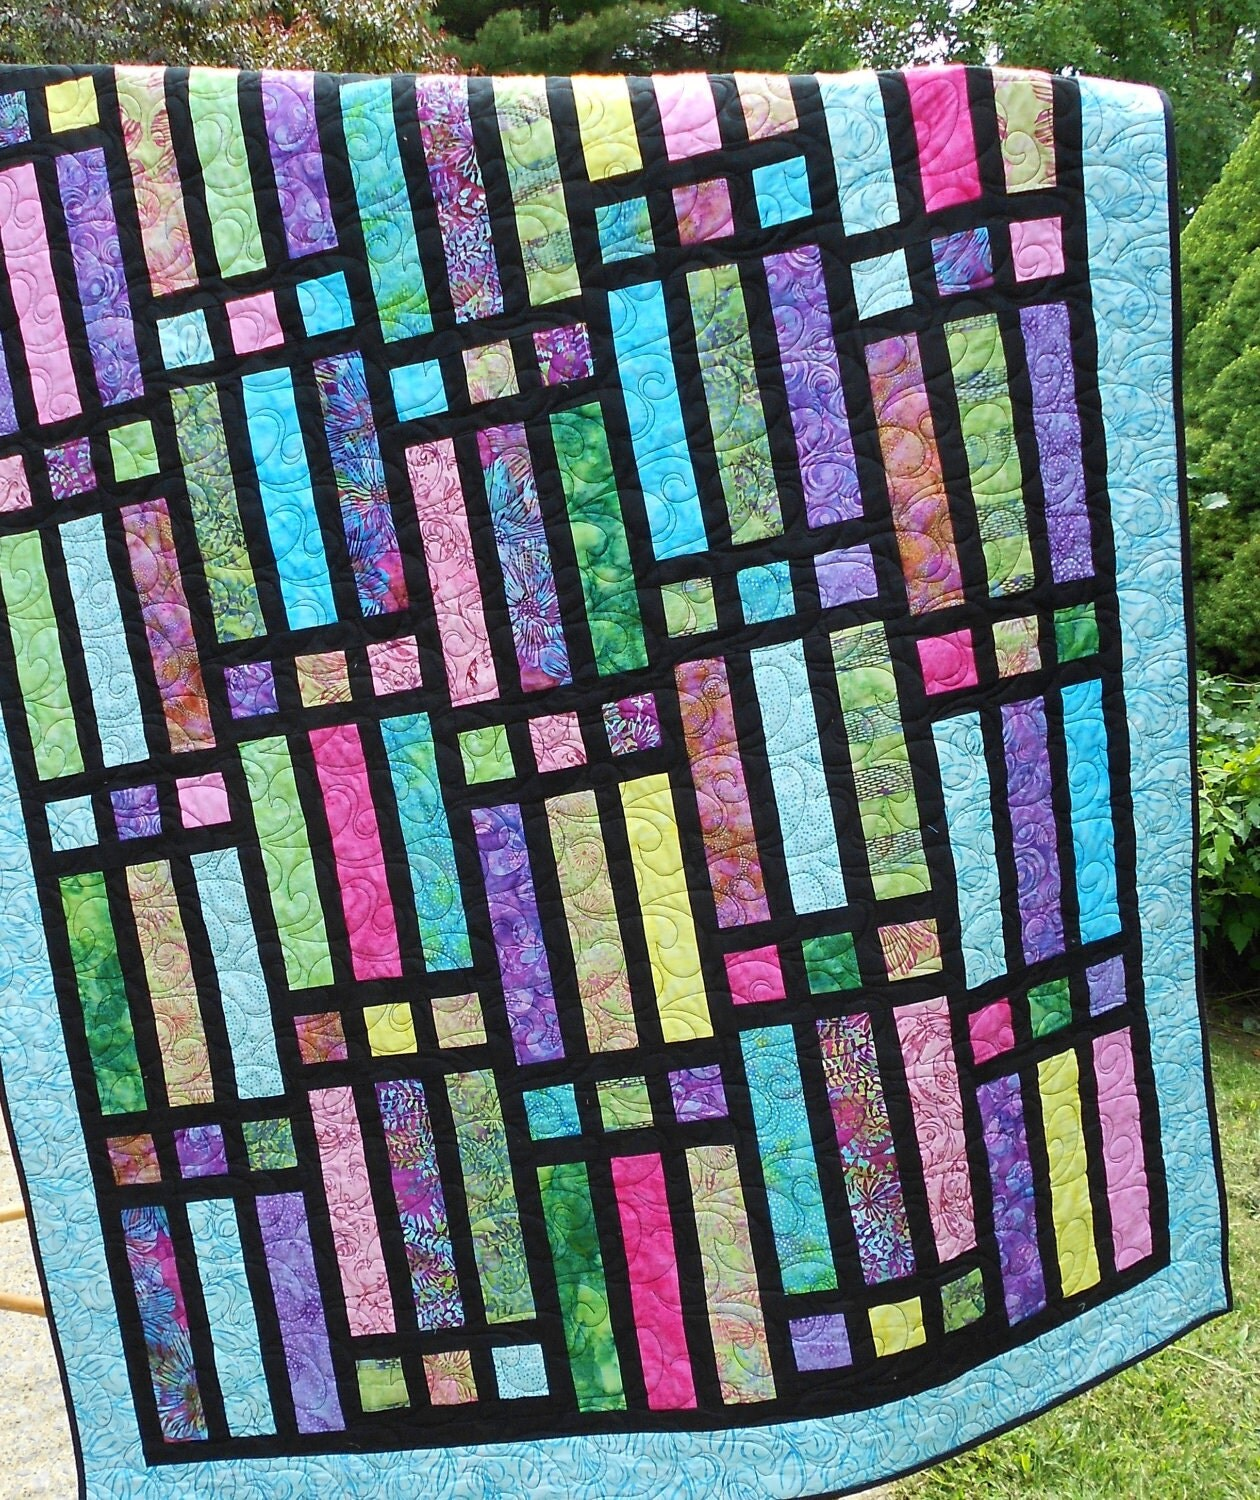 Quilt Pattern Gateway To Paradise Quilt Pattern Jelly Roll : quilt jelly roll - Adamdwight.com